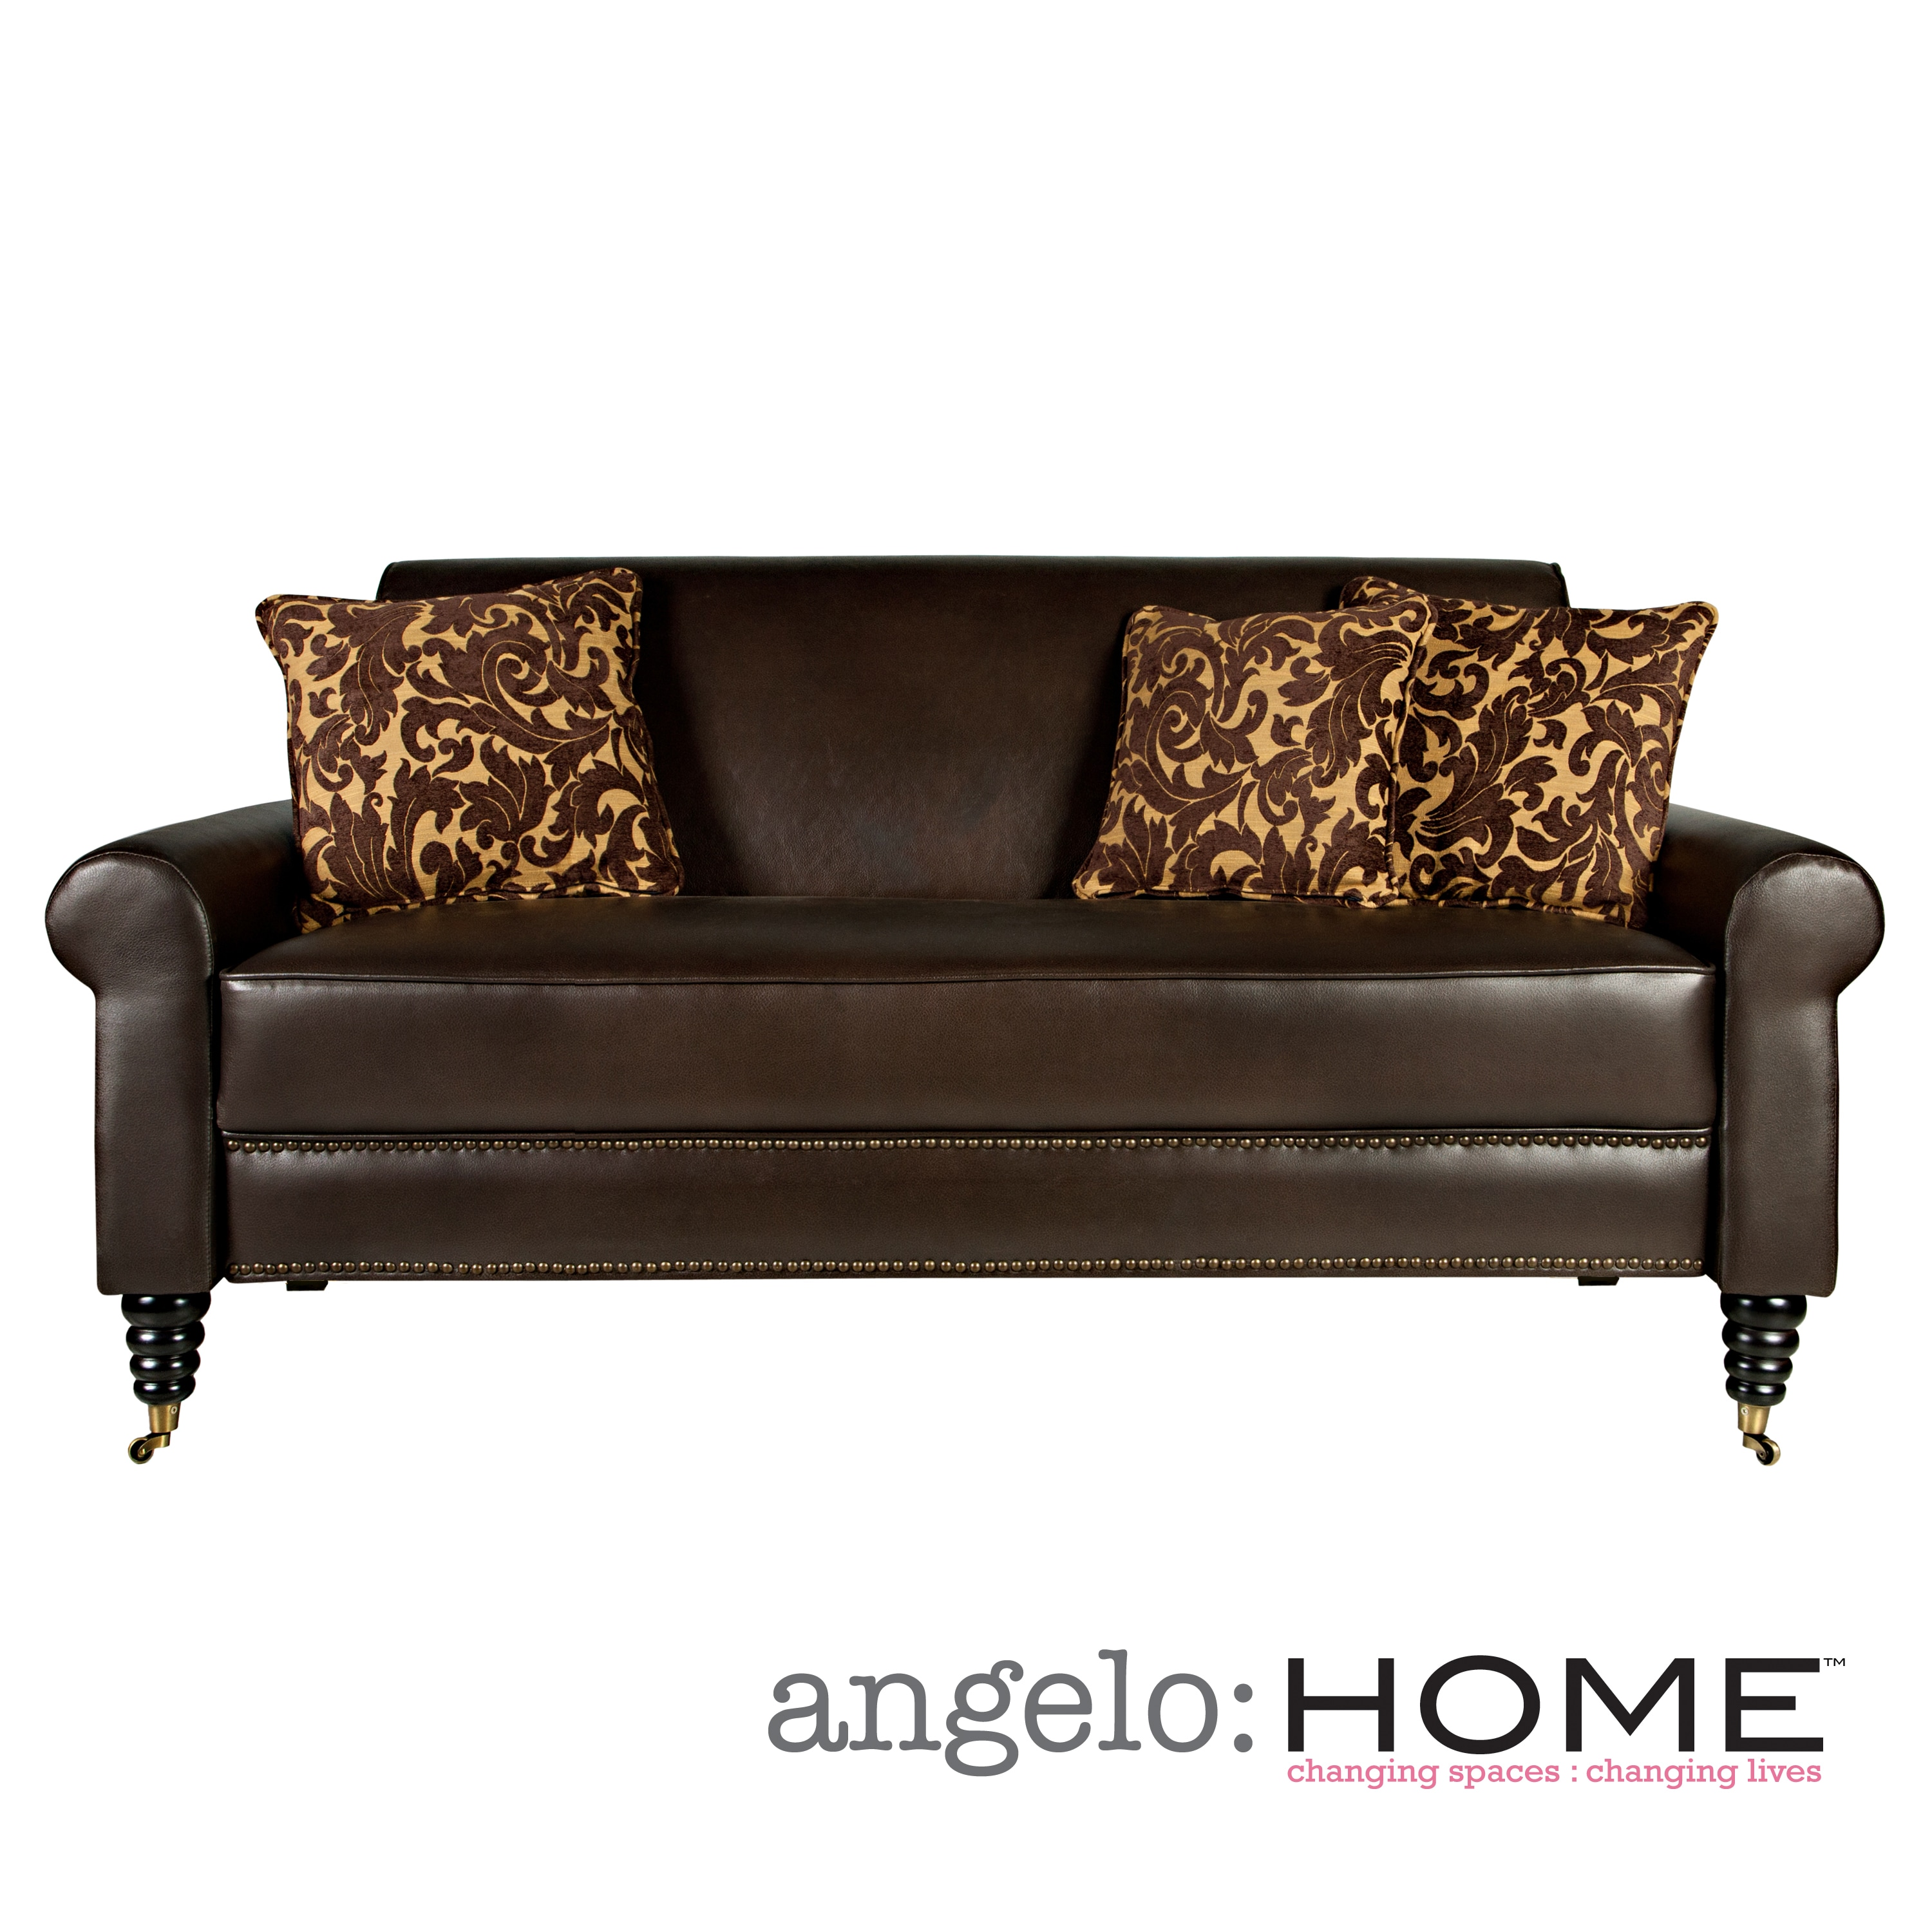 angelo:HOME Harlow Sofa in Coffee Brown Renu Leather